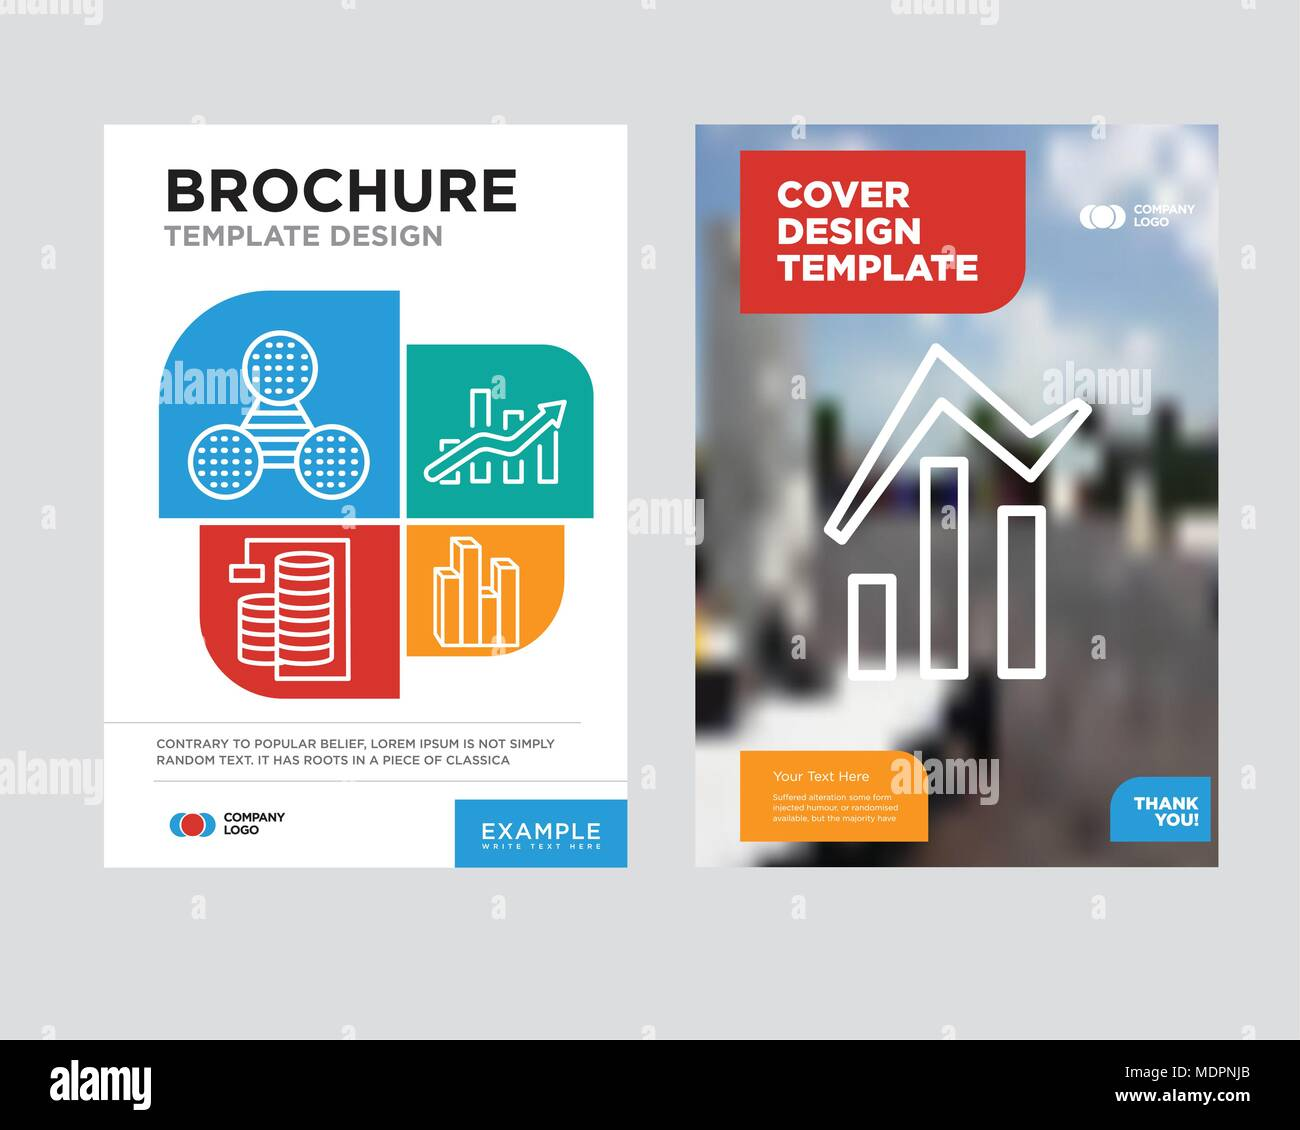 Bars and data analytics brochure flyer design template with abstract photo background, Stream graphic, Bars chart, Database Analysis, Pie graphic comp - Stock Image